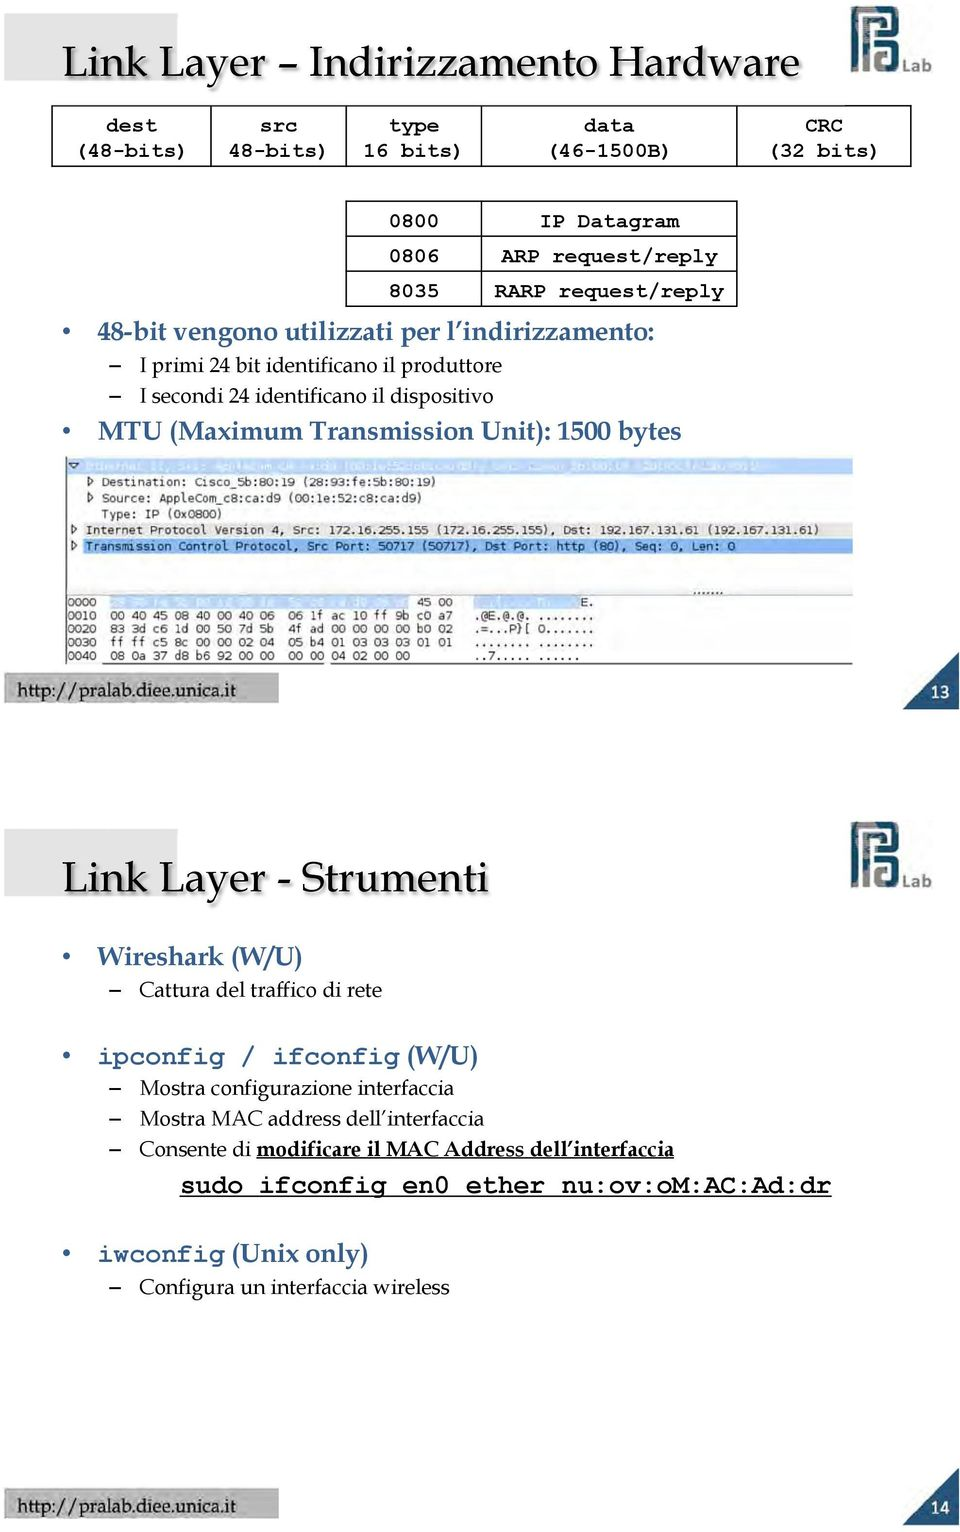 Unit): 1500 bytes Link Layer - Strumenti Wireshark (W/U) Cattura del traffico di rete ipconfig / ifconfig (W/U) Mostra configurazione interfaccia Mostra MAC address